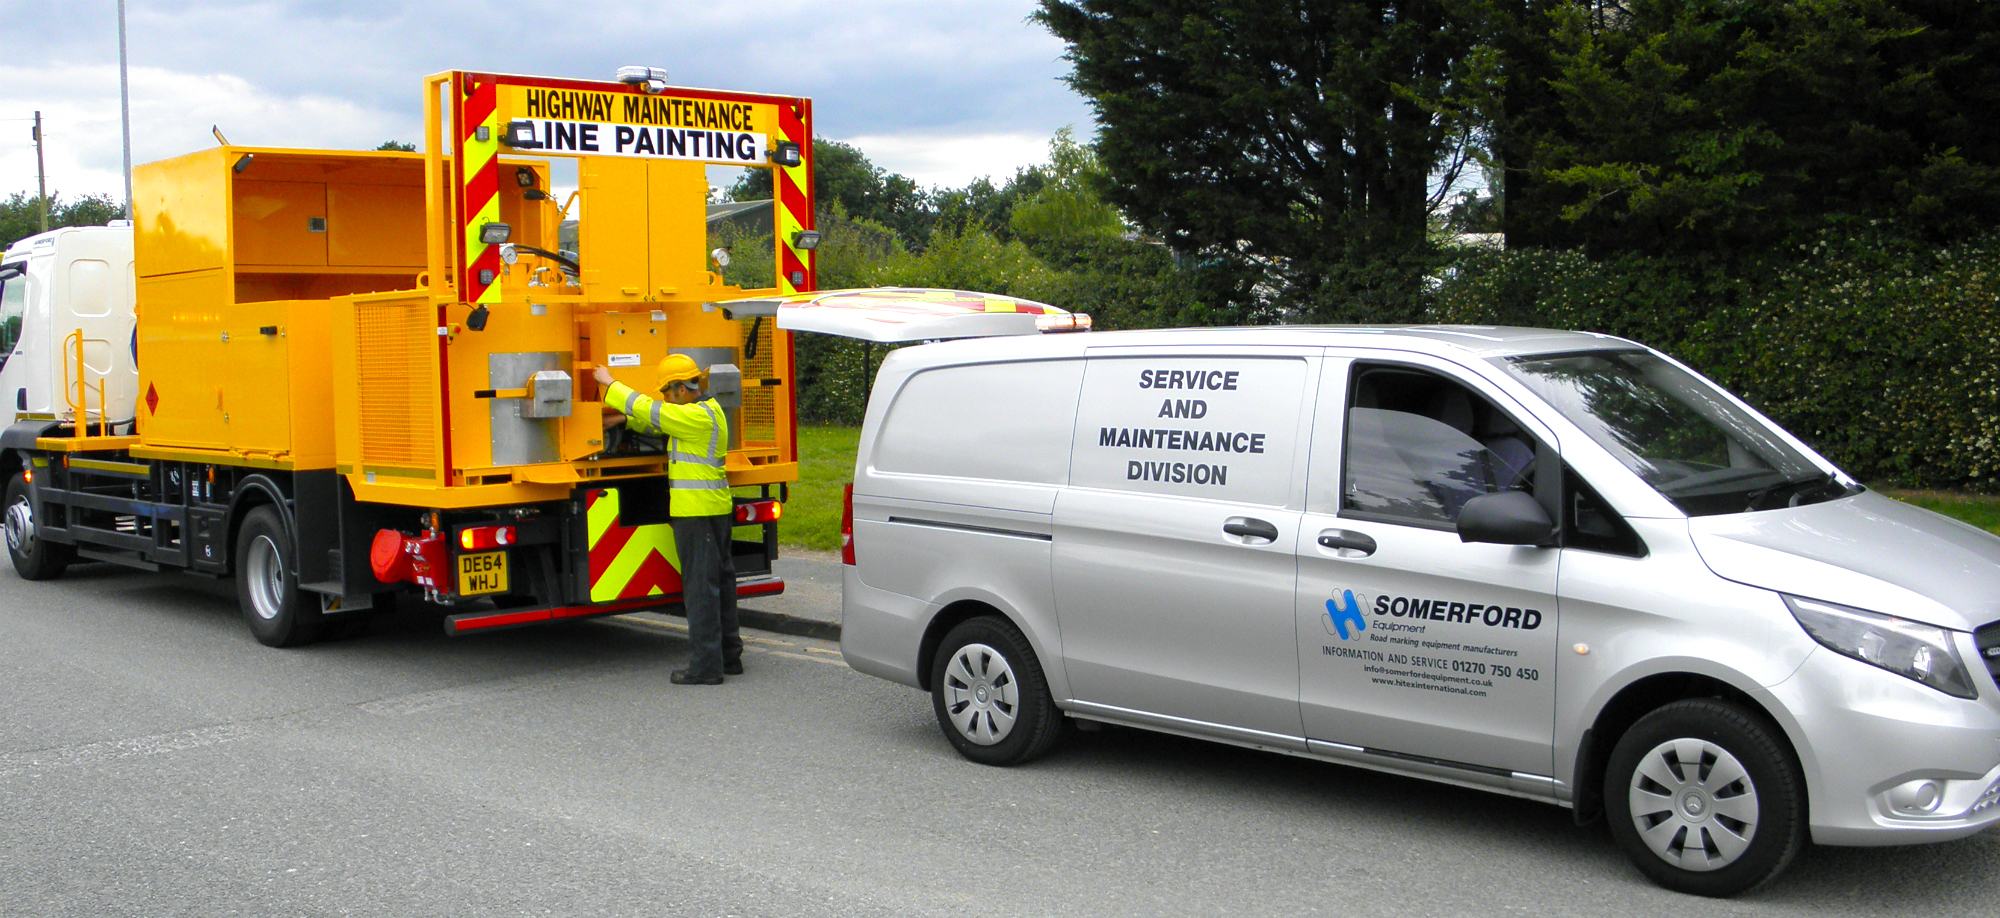 Road Marking Vehicle Servicing